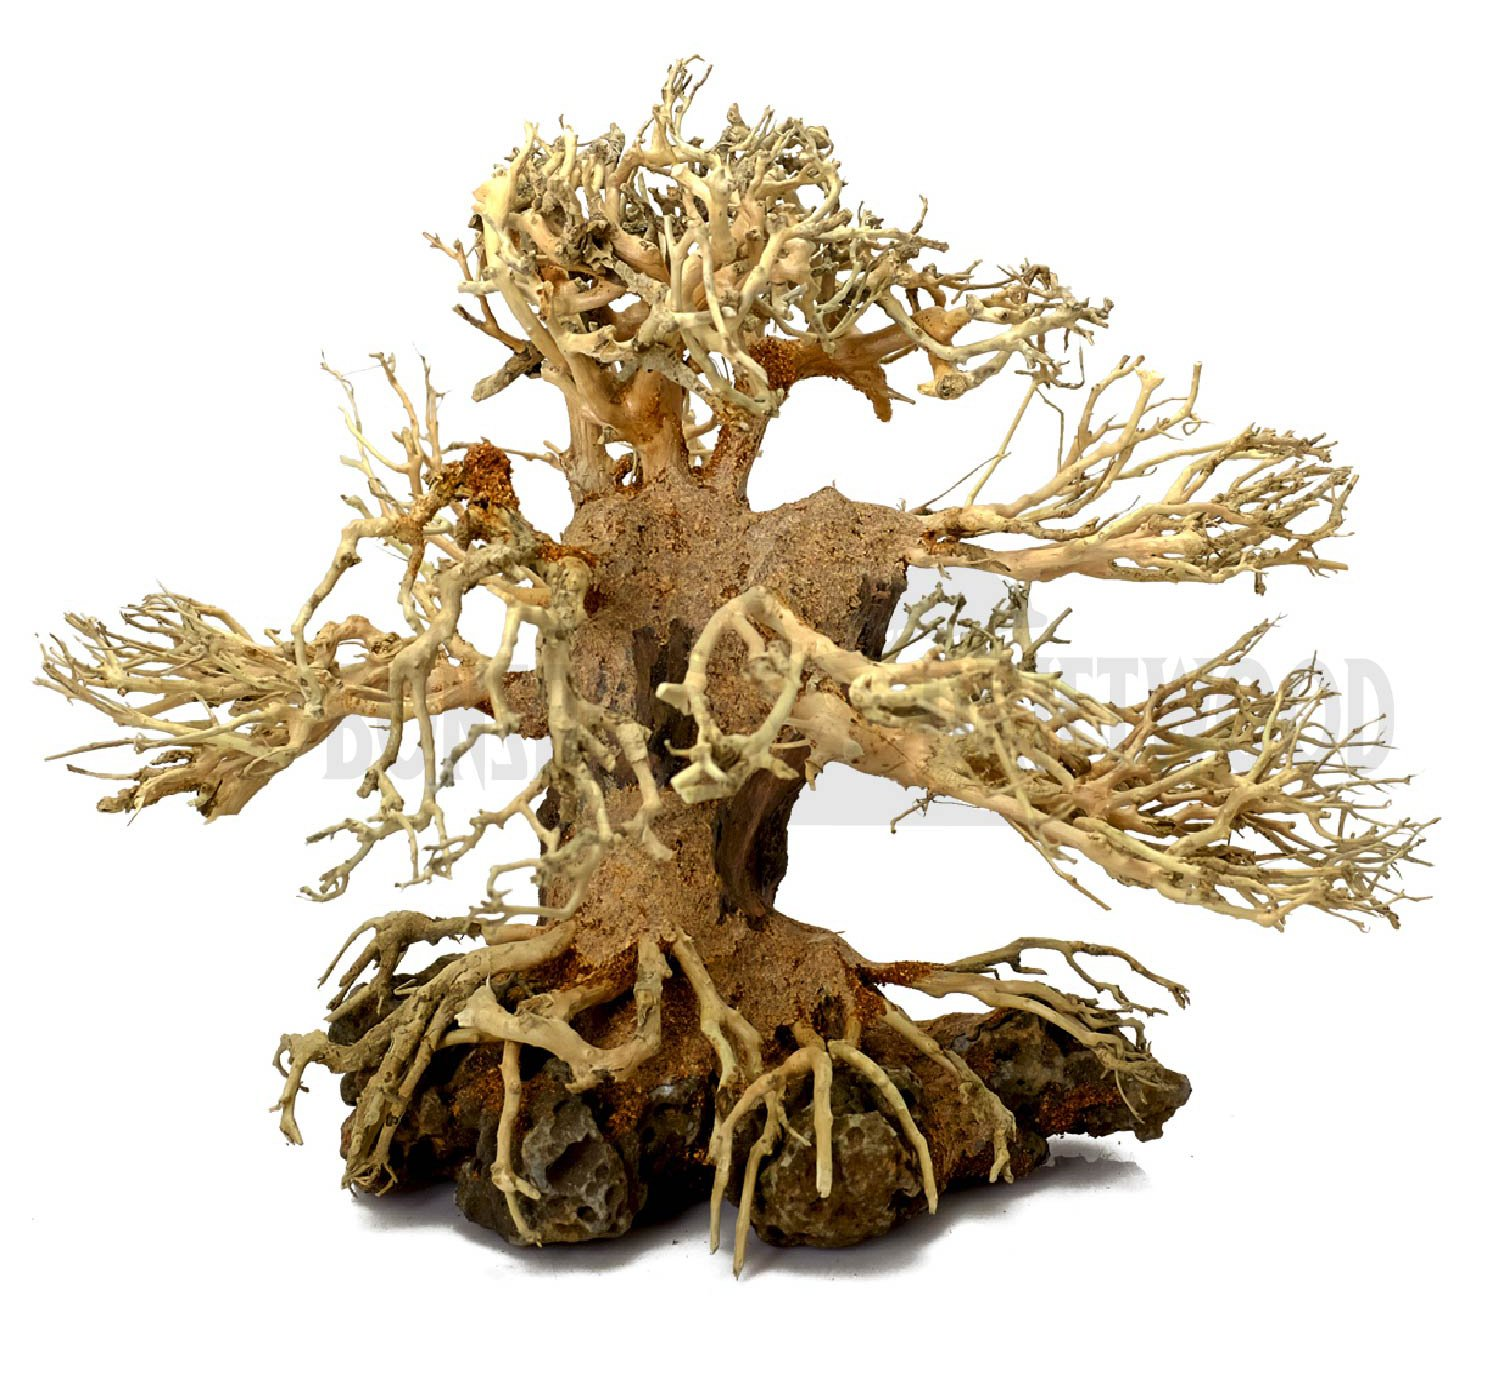 Bonsai Driftwood Aquarium Tree ALS on rock (6 Inch Height) Natural, Handcrafted Fish Tank Decoration | Helps Balance Water pH Levels, Stabilizes Environments | Easy to Install